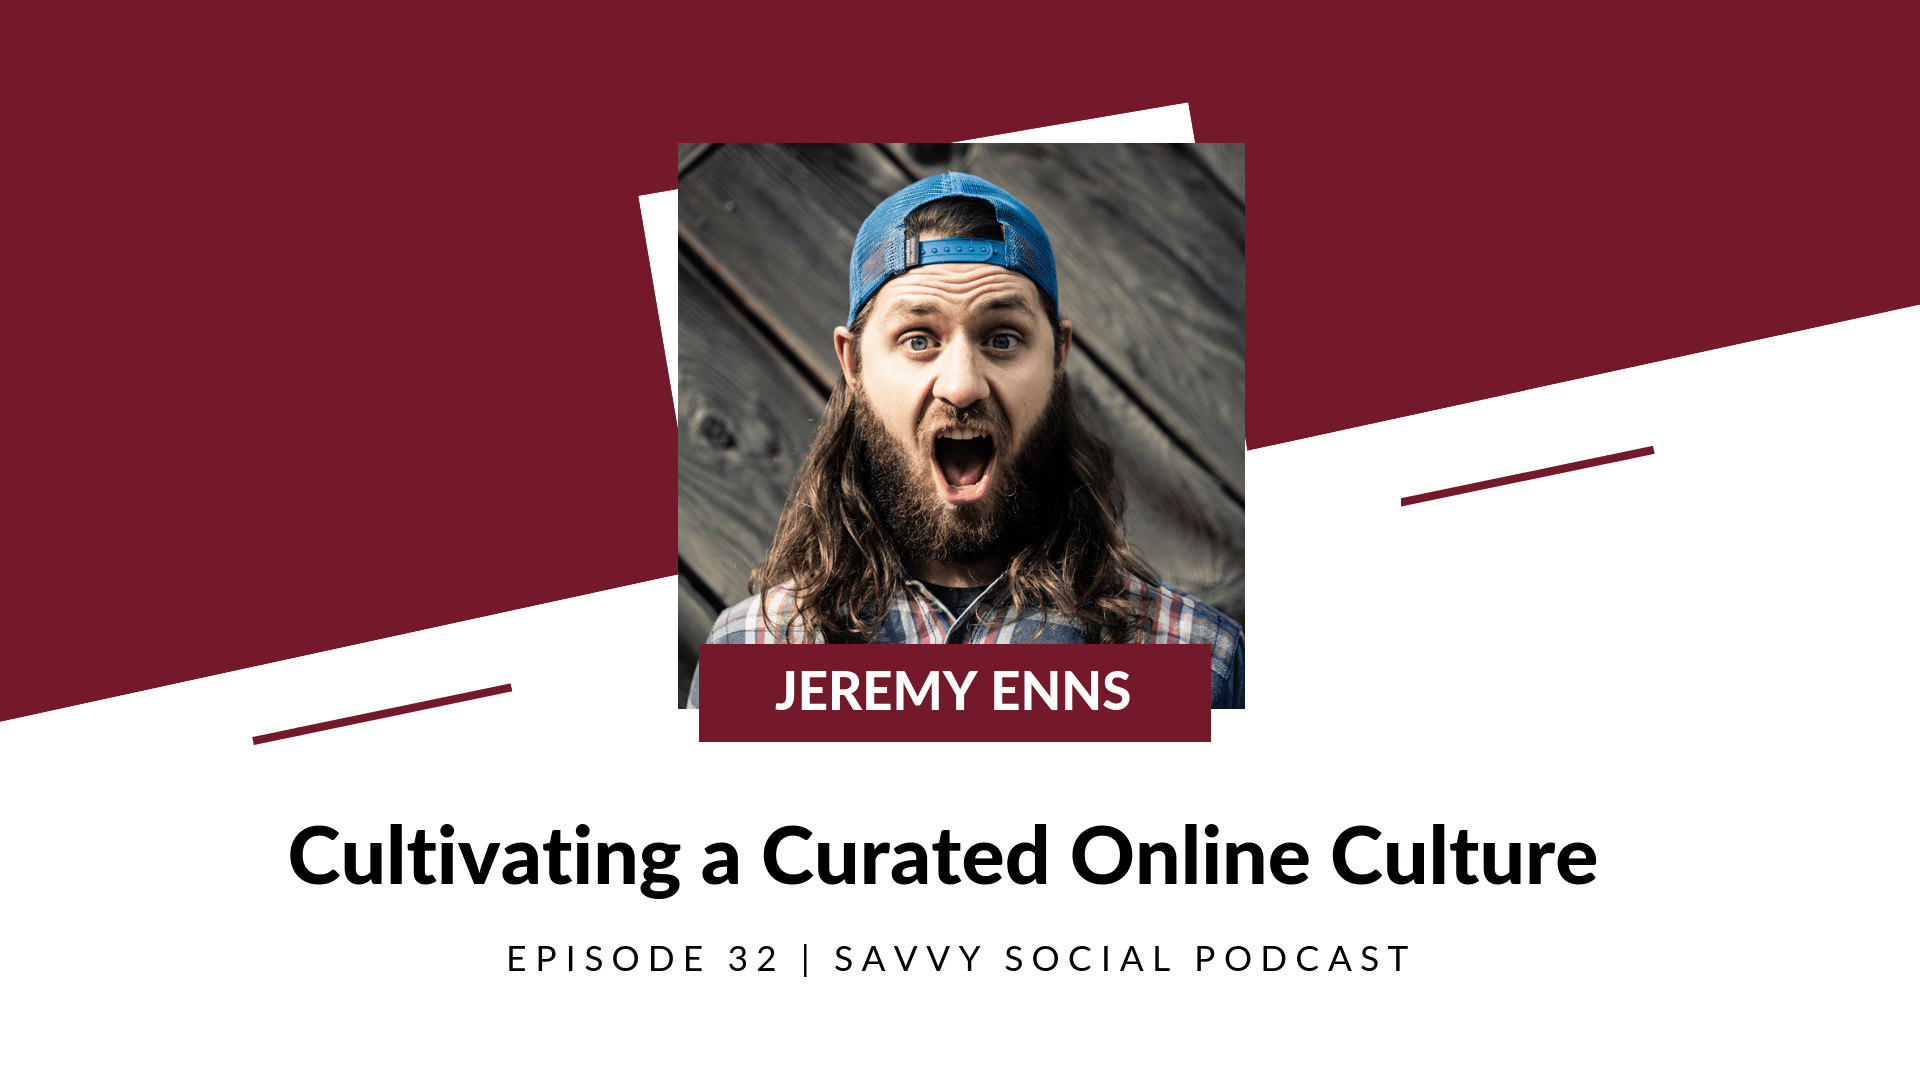 Cultivating a Curated Online Culture with Jeremy Enns